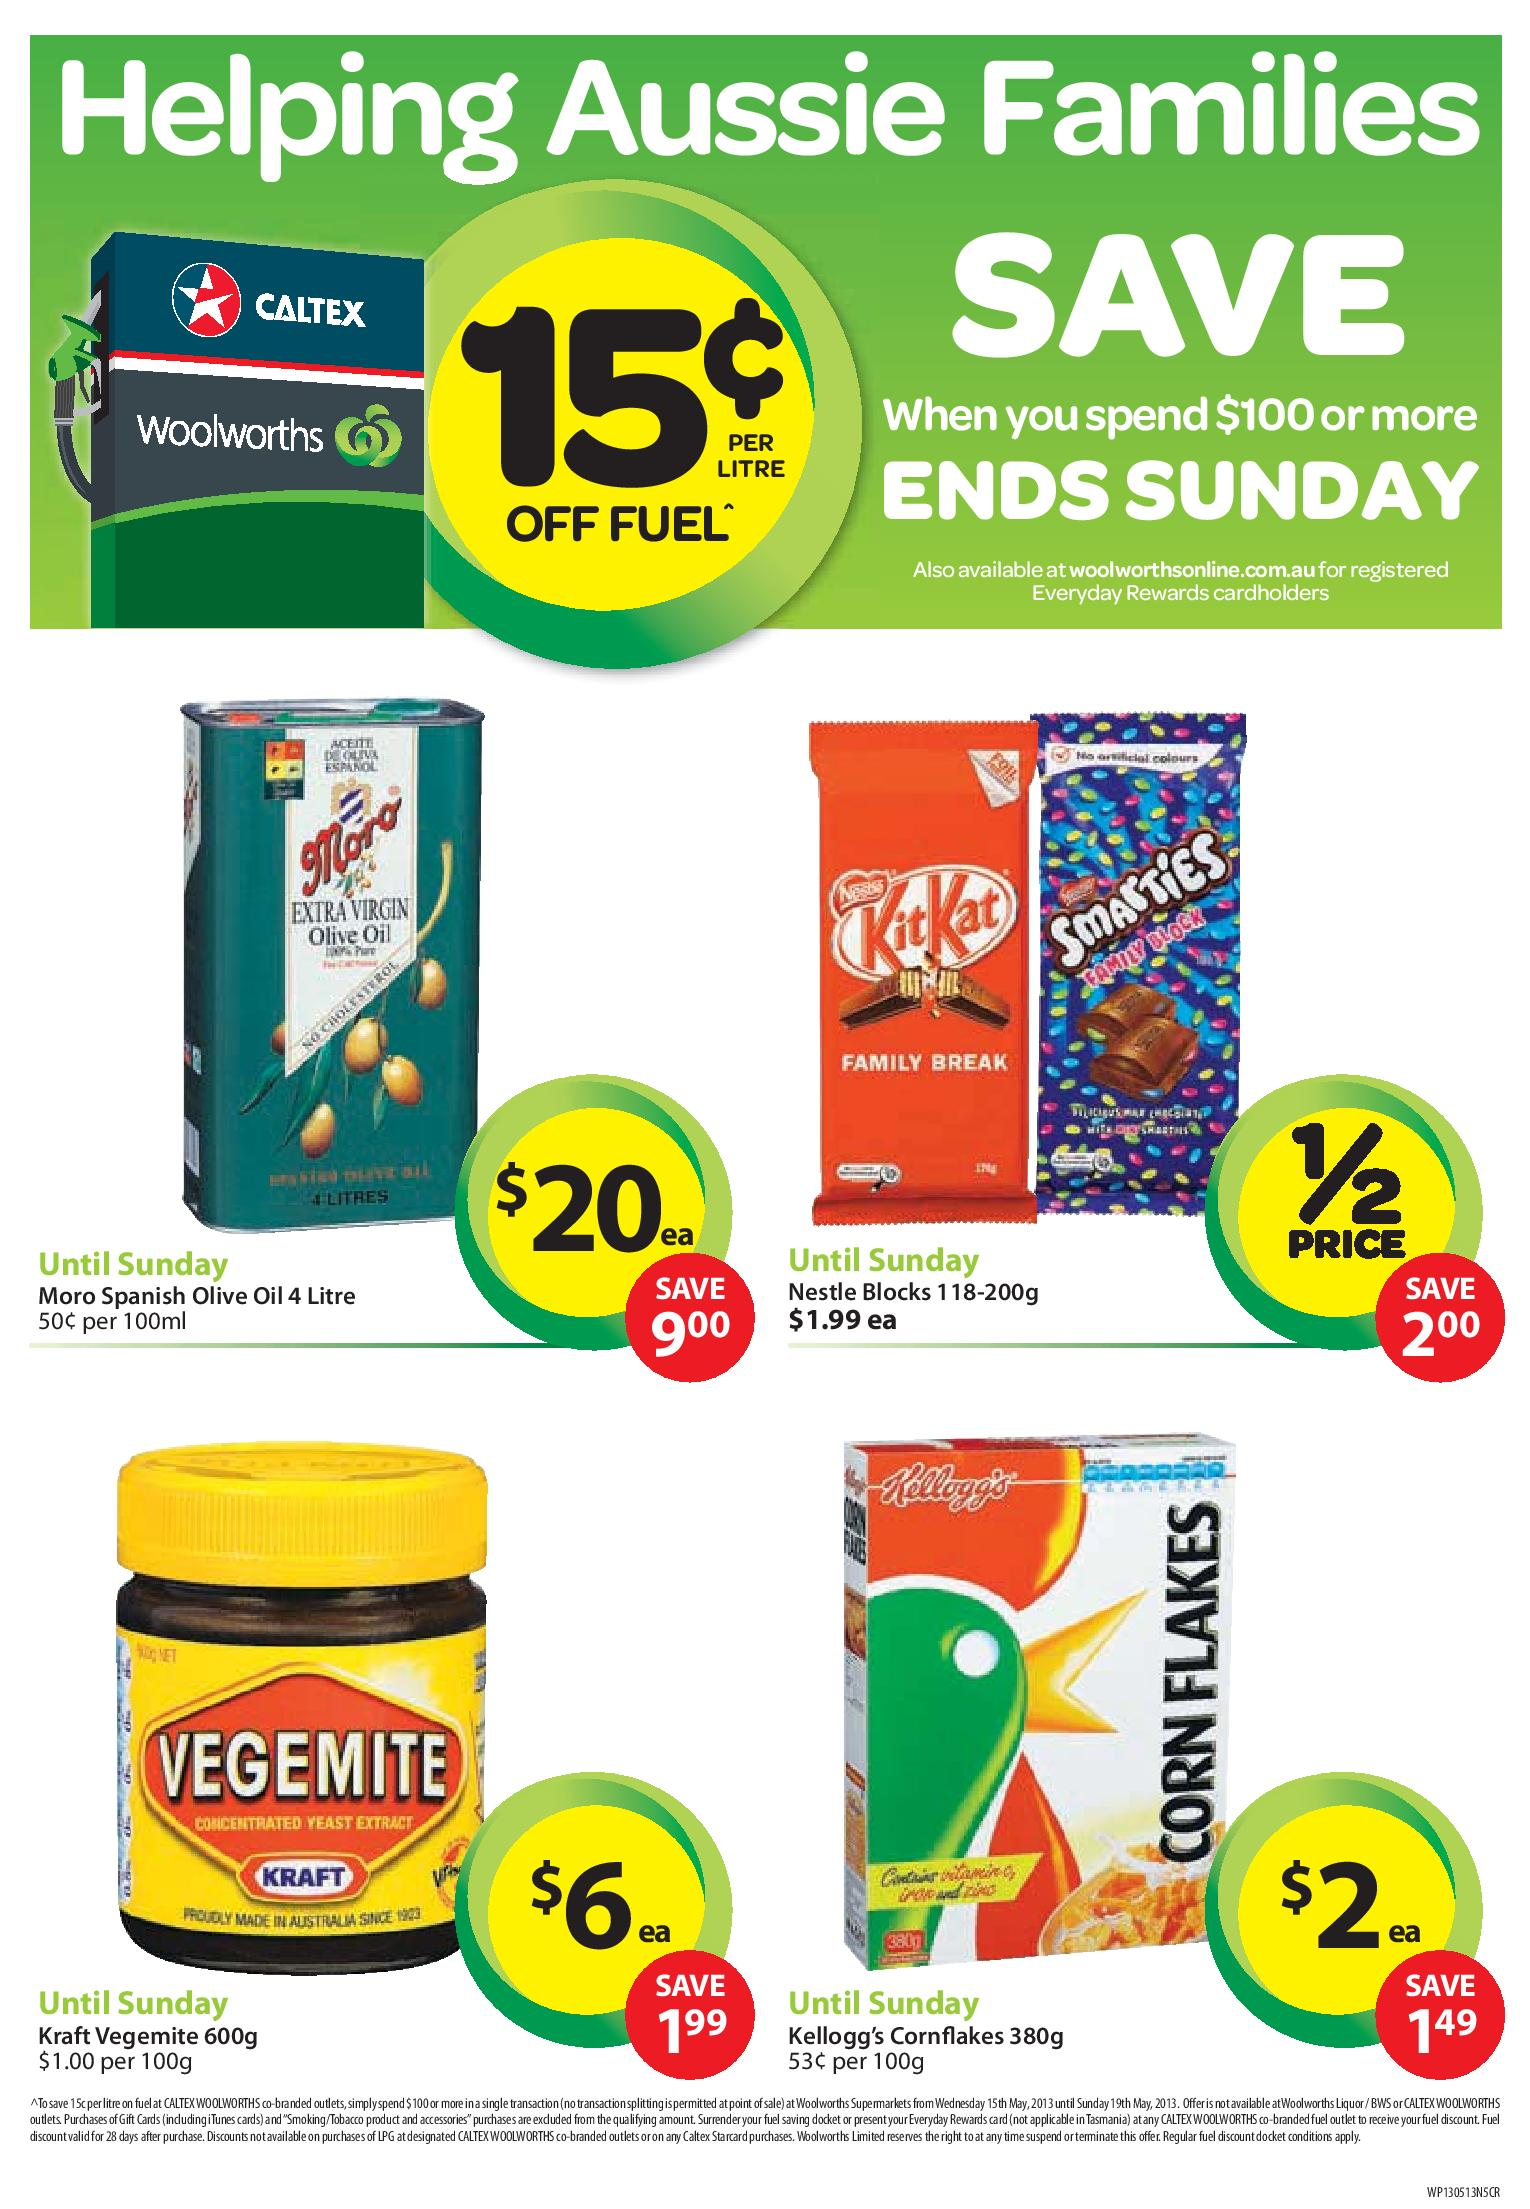 Online Grocery Shopping Discount